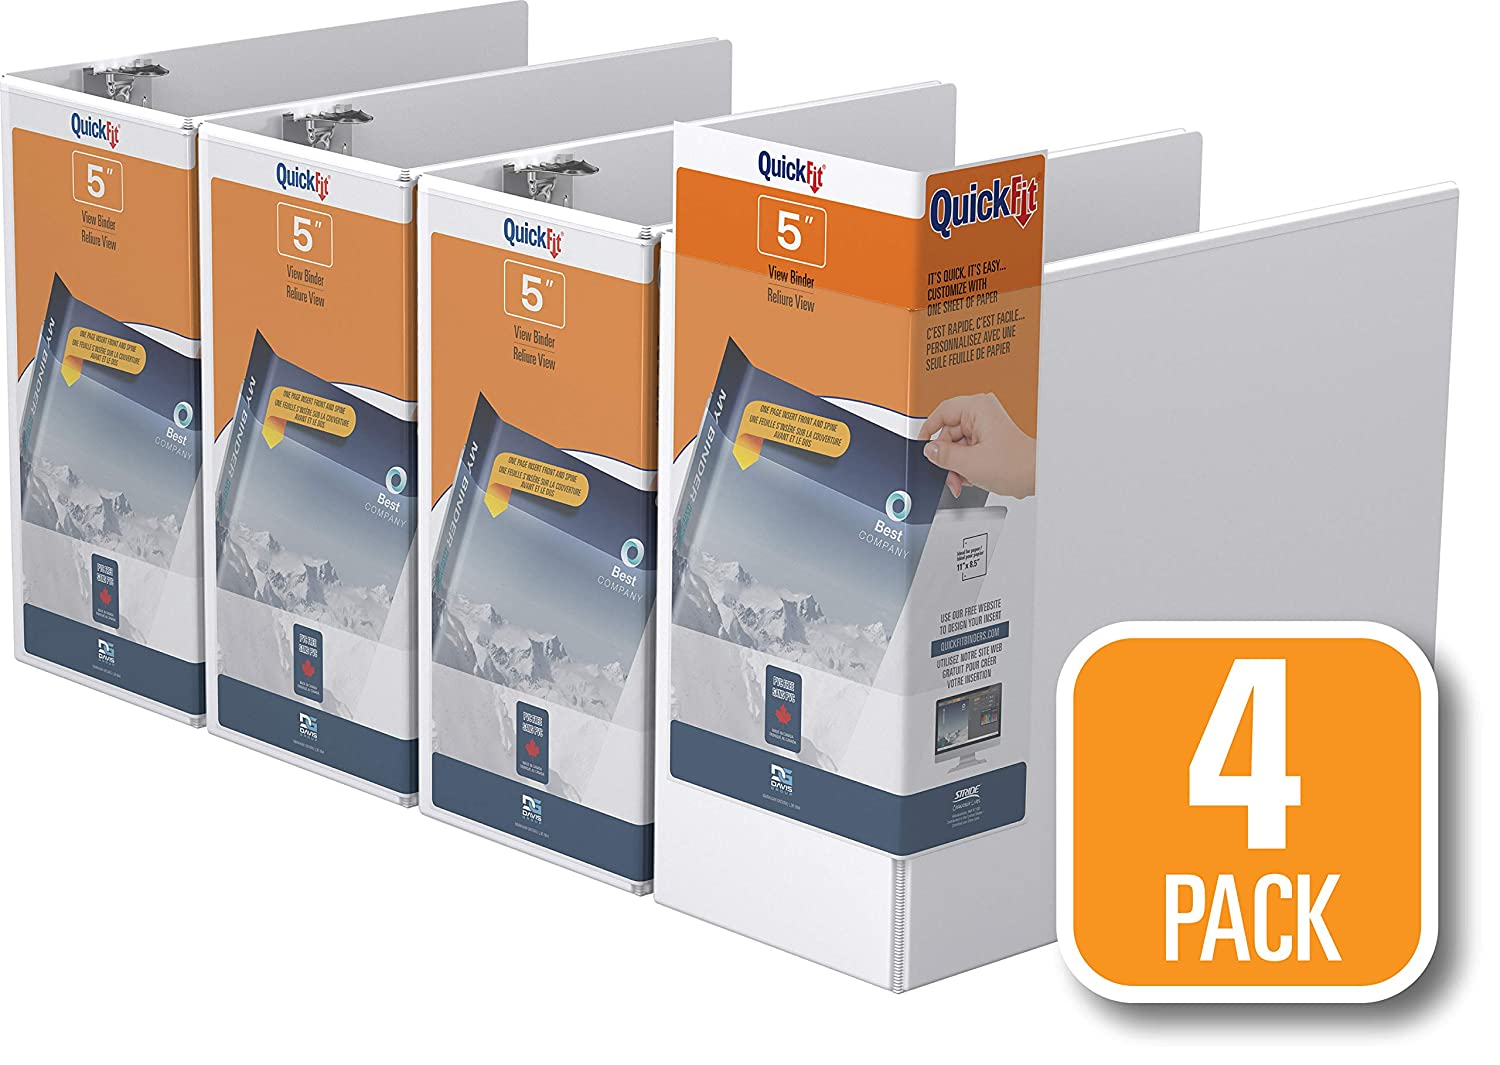 87001-06 6 Pack 5//8 Angle D Ring Black QuickFit View Binder